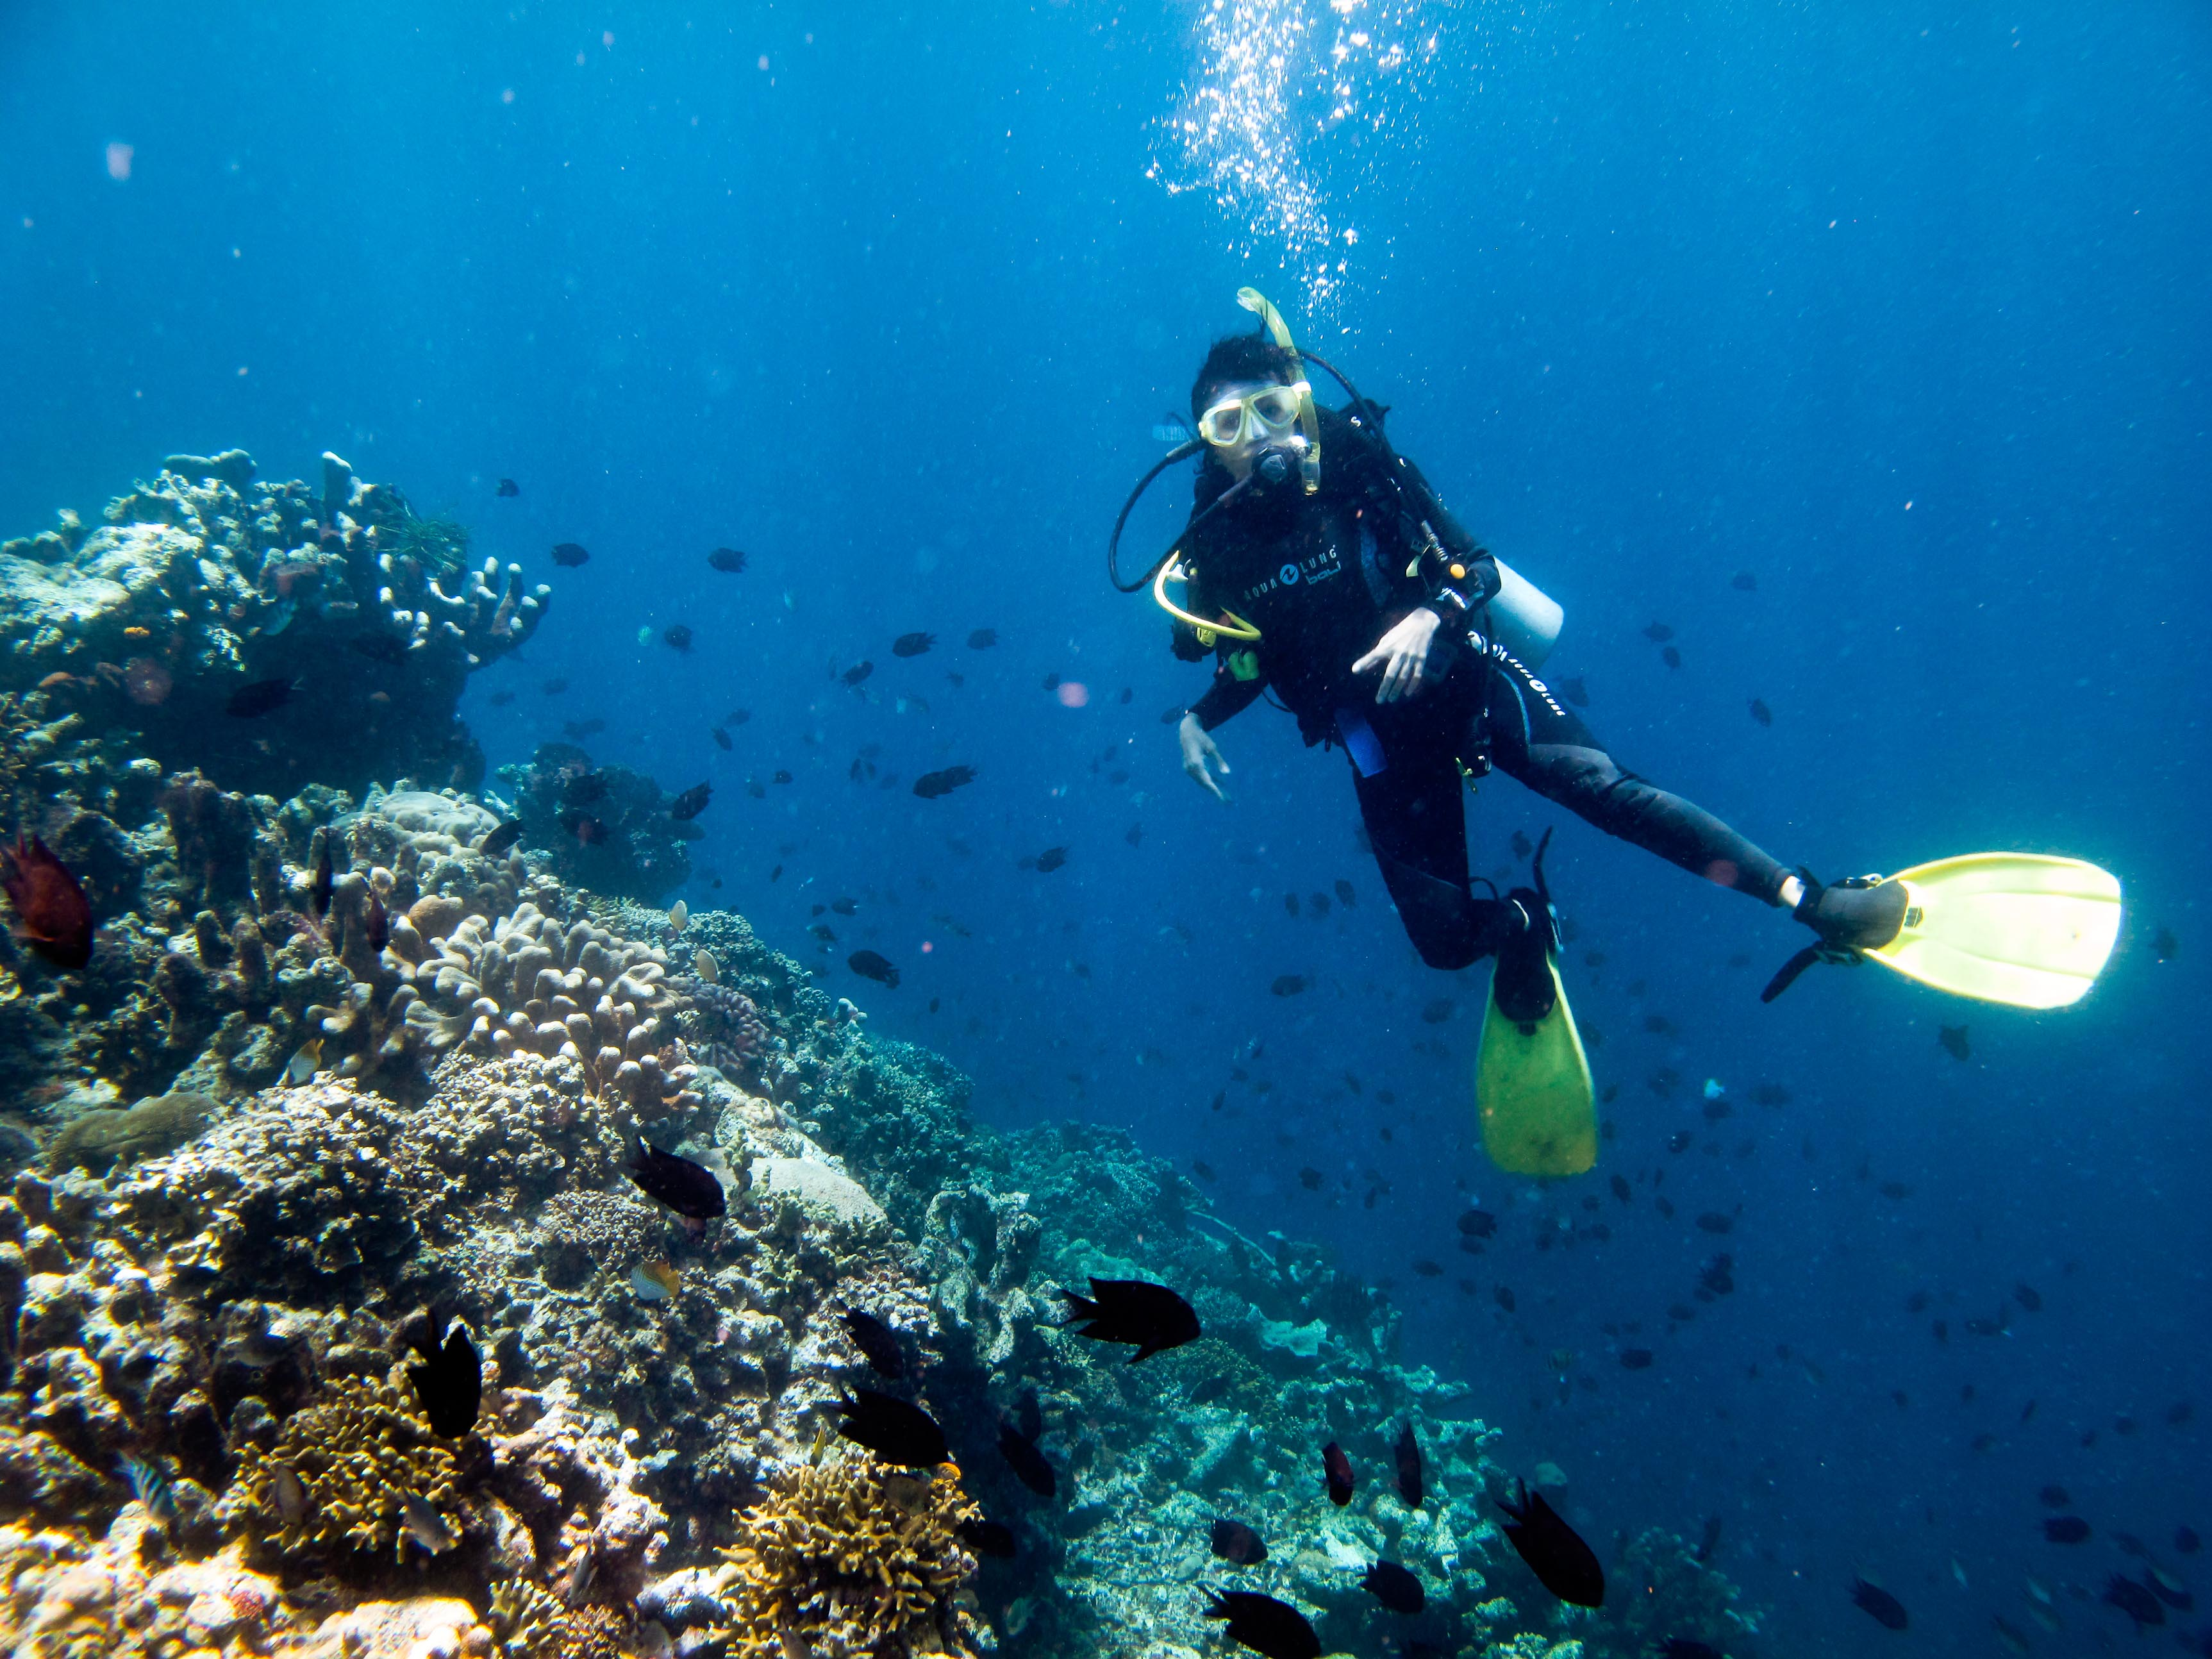 scuba diving | For the Remembrance